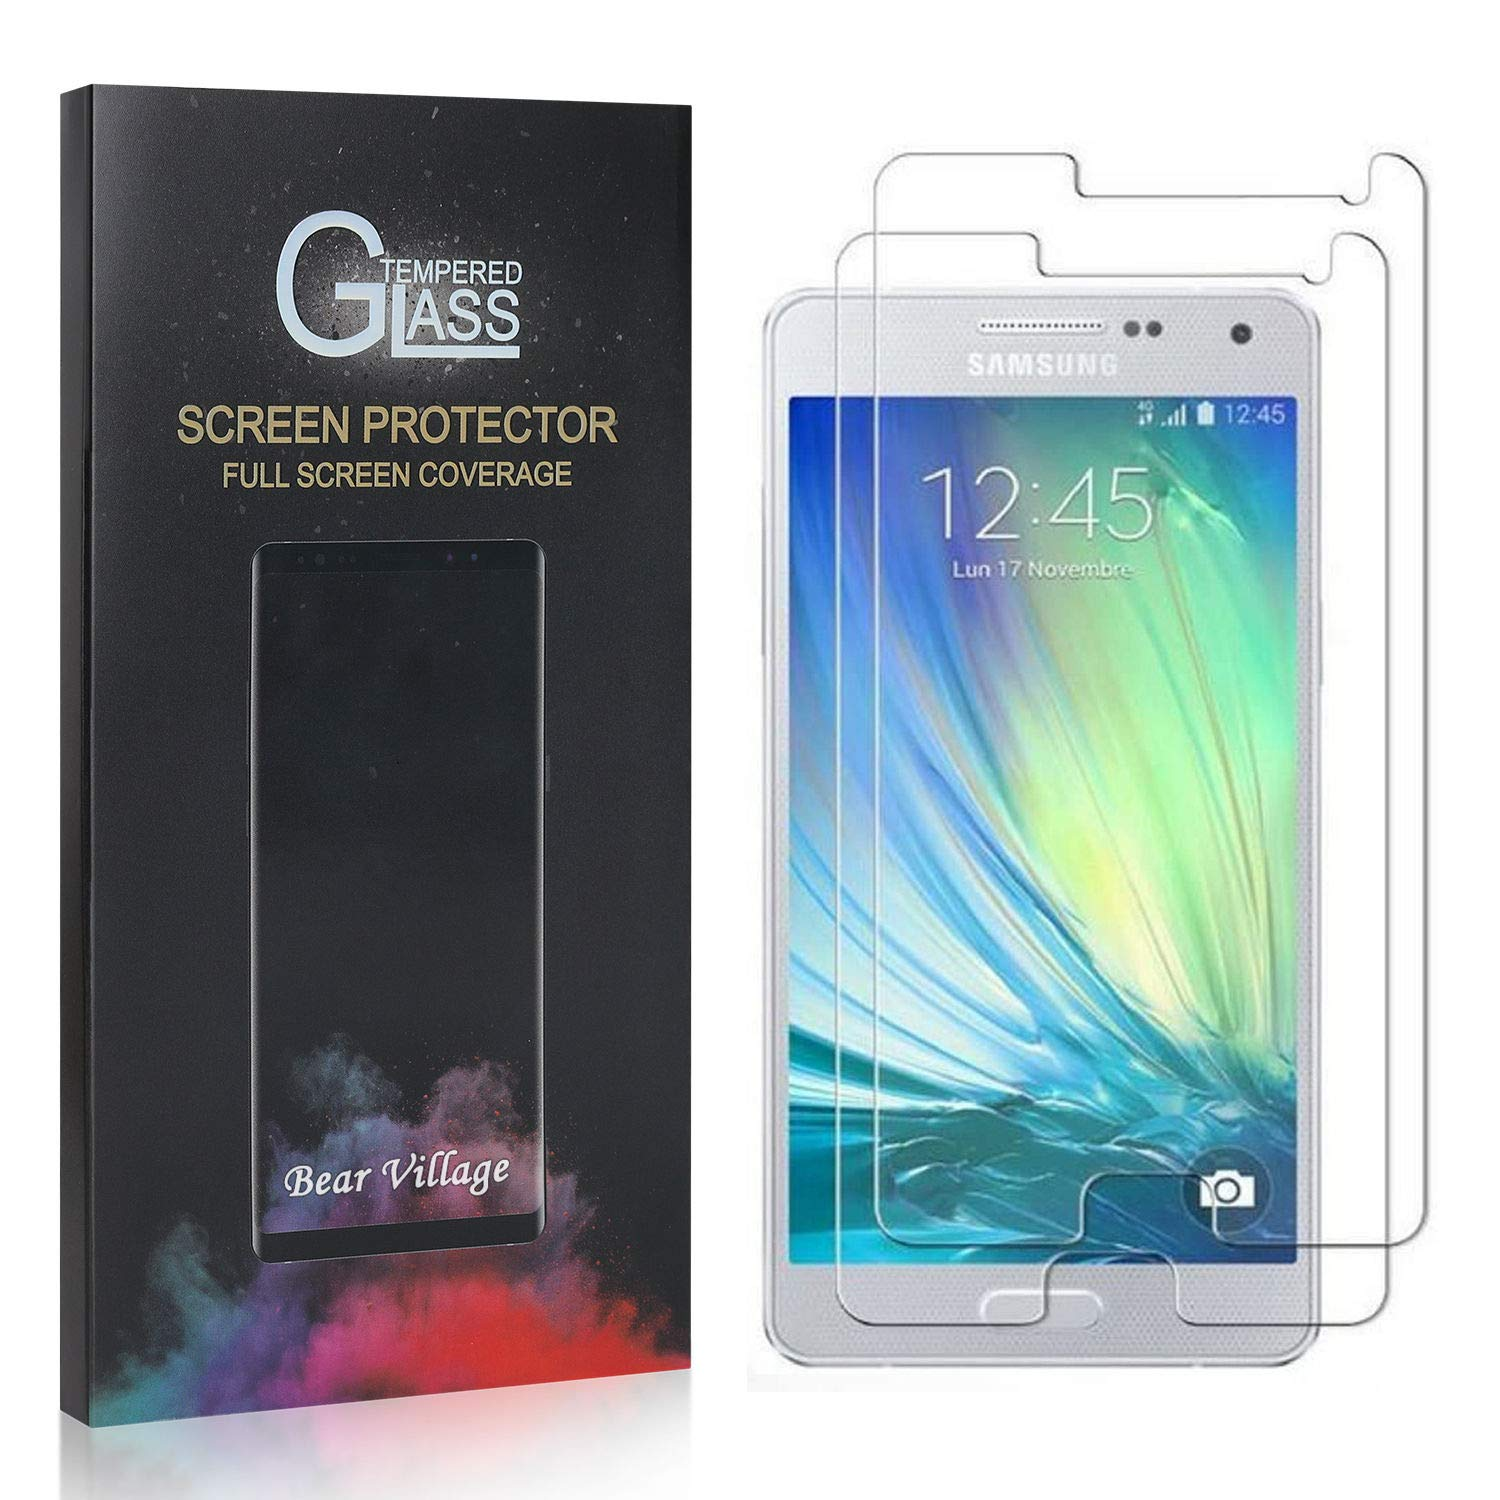 2 Pack Screen Protector for Galaxy A5 2015 Bear Village Ultra Clear Tempered Glass Screen Protector for Samsung Galaxy A5 2015 Anti Fingerprint Screen Protector Glass